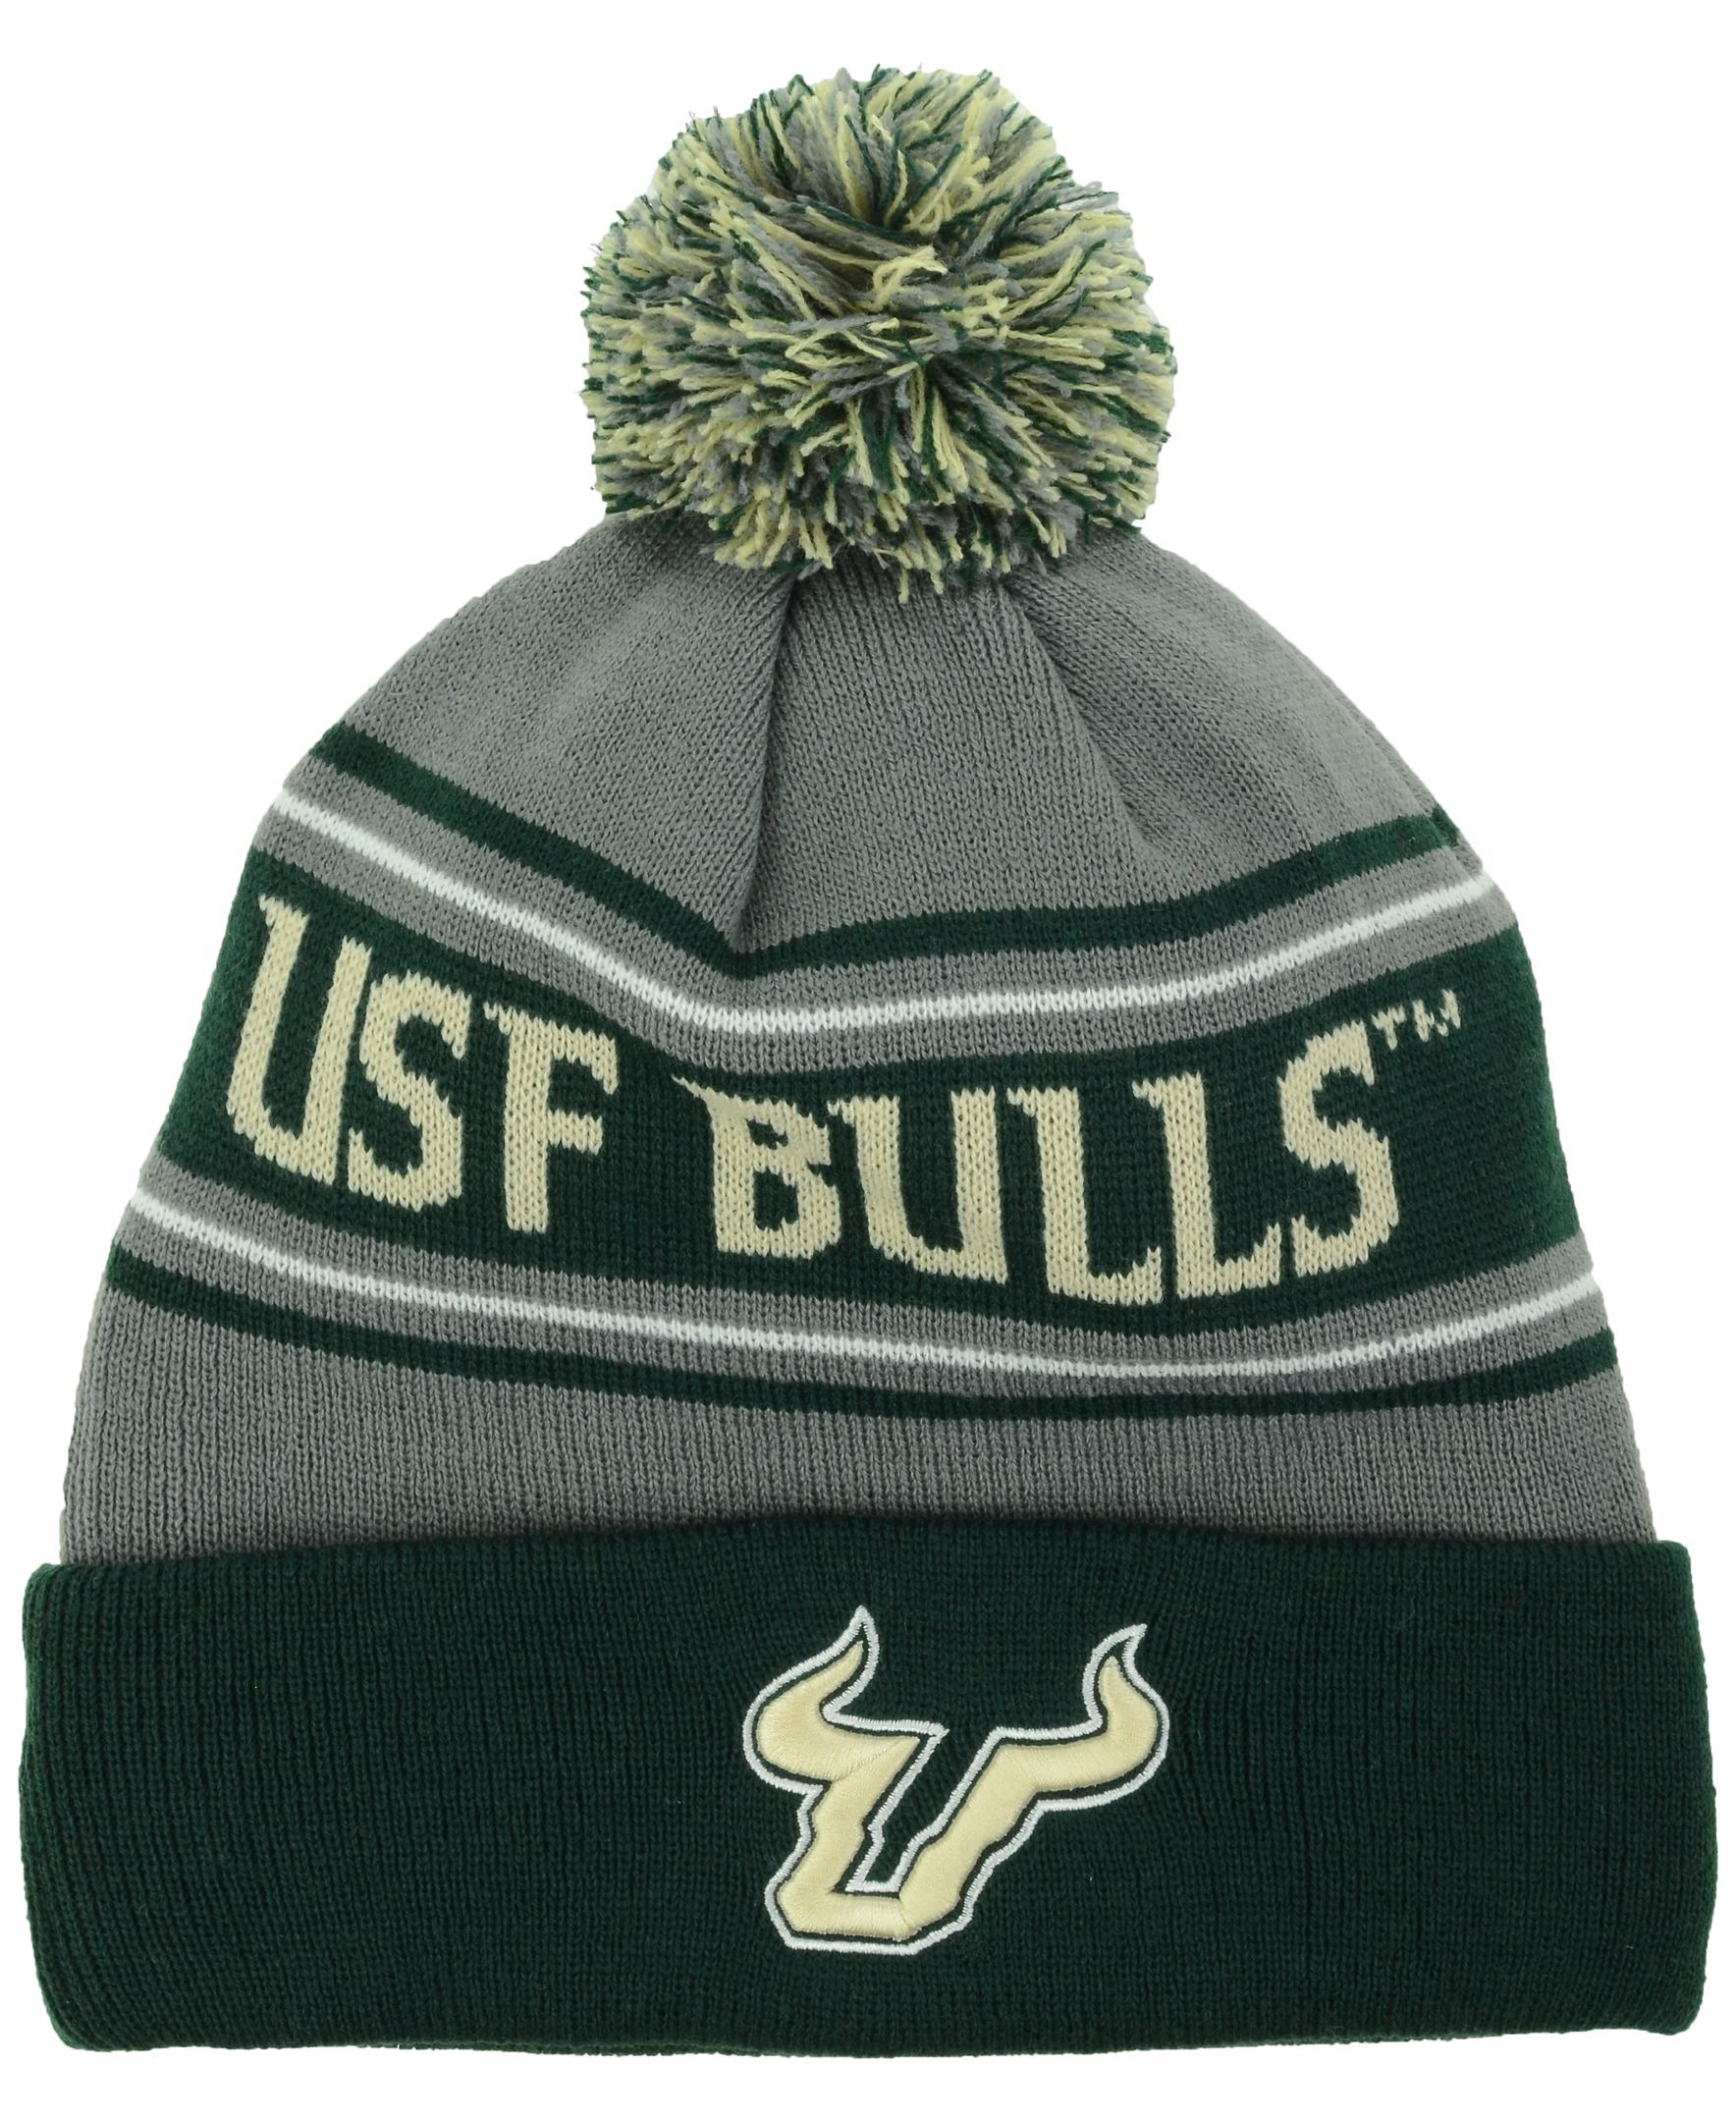 f15aa4cb1761f8 Top of the World South Florida Bulls Charcoal Ambient Pom Knit Hat ...